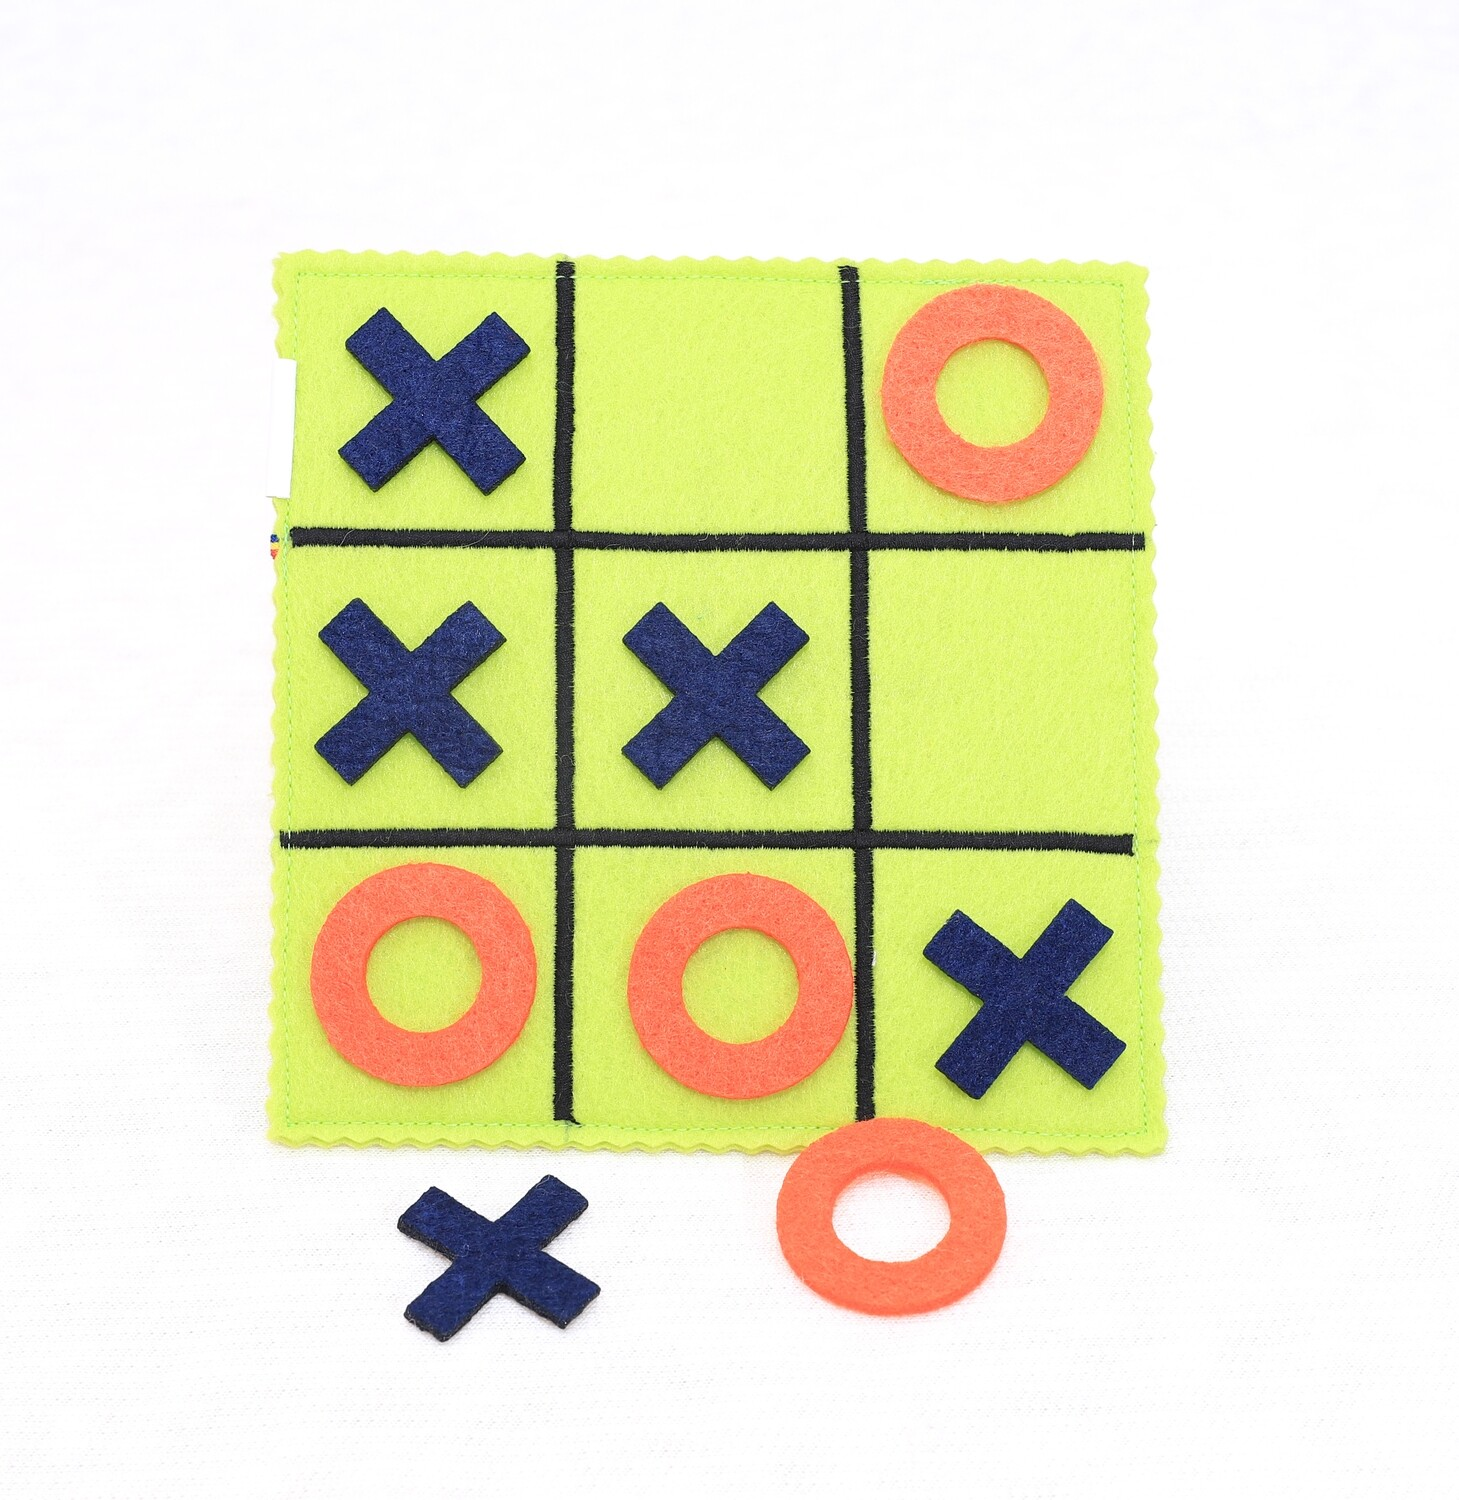 Tic Tac Toe Game Handmade Toy by Tantino